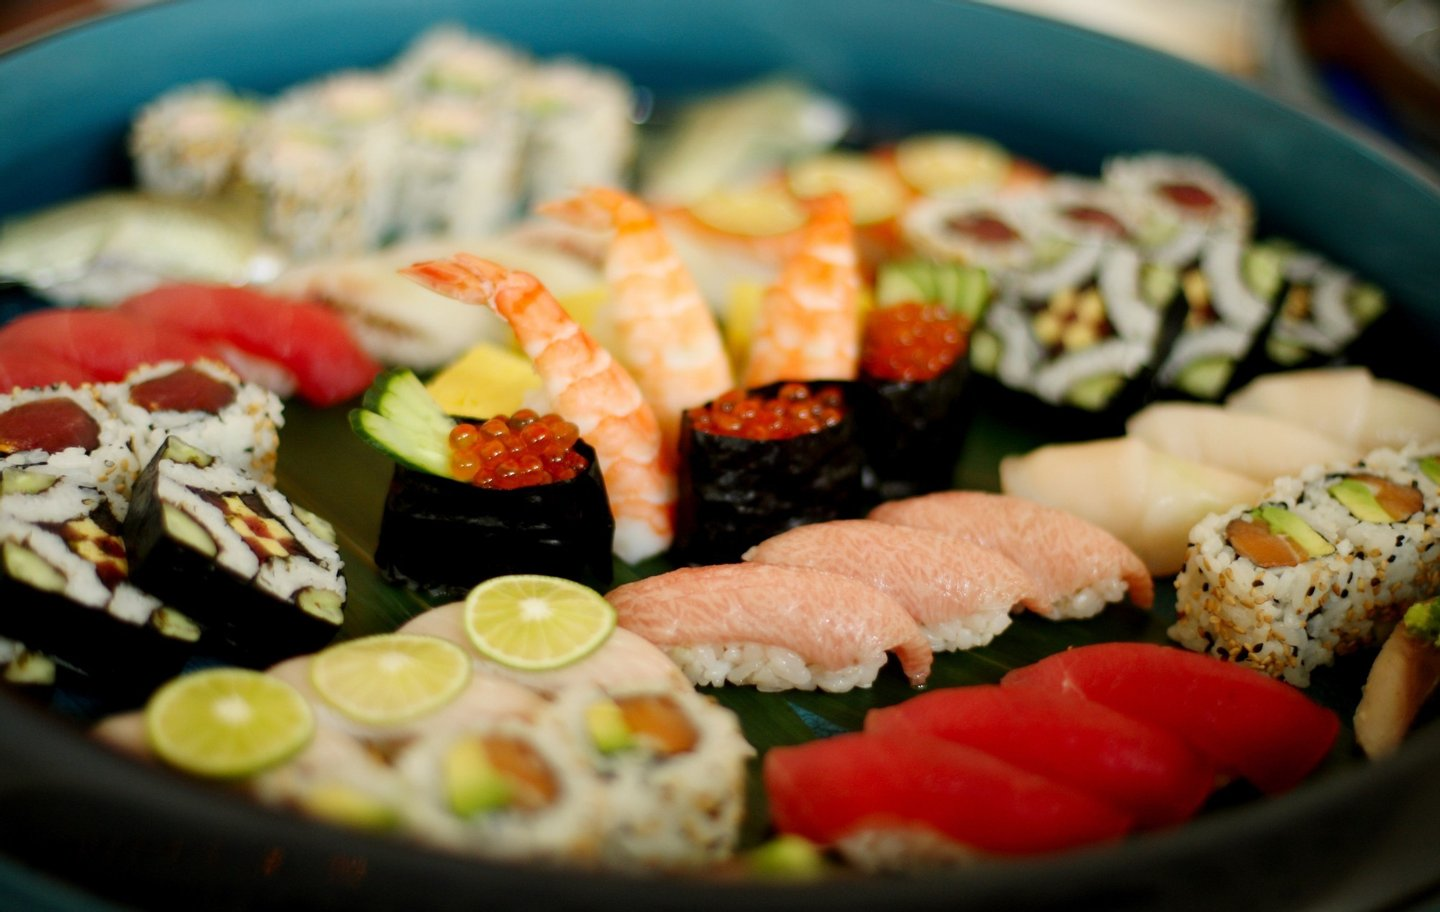 NEW YORK, NY - AUGUST 23:  Sushi is seen on a platter during a food tasting prior to the start of the 2012 U.S. Open at the USTA Billie Jean King National Tennis Center on August 23, 2012 in the Flushing neighborhood, of the Queens borough of New York City.  (Photo by Alex Trautwig/Getty Images)